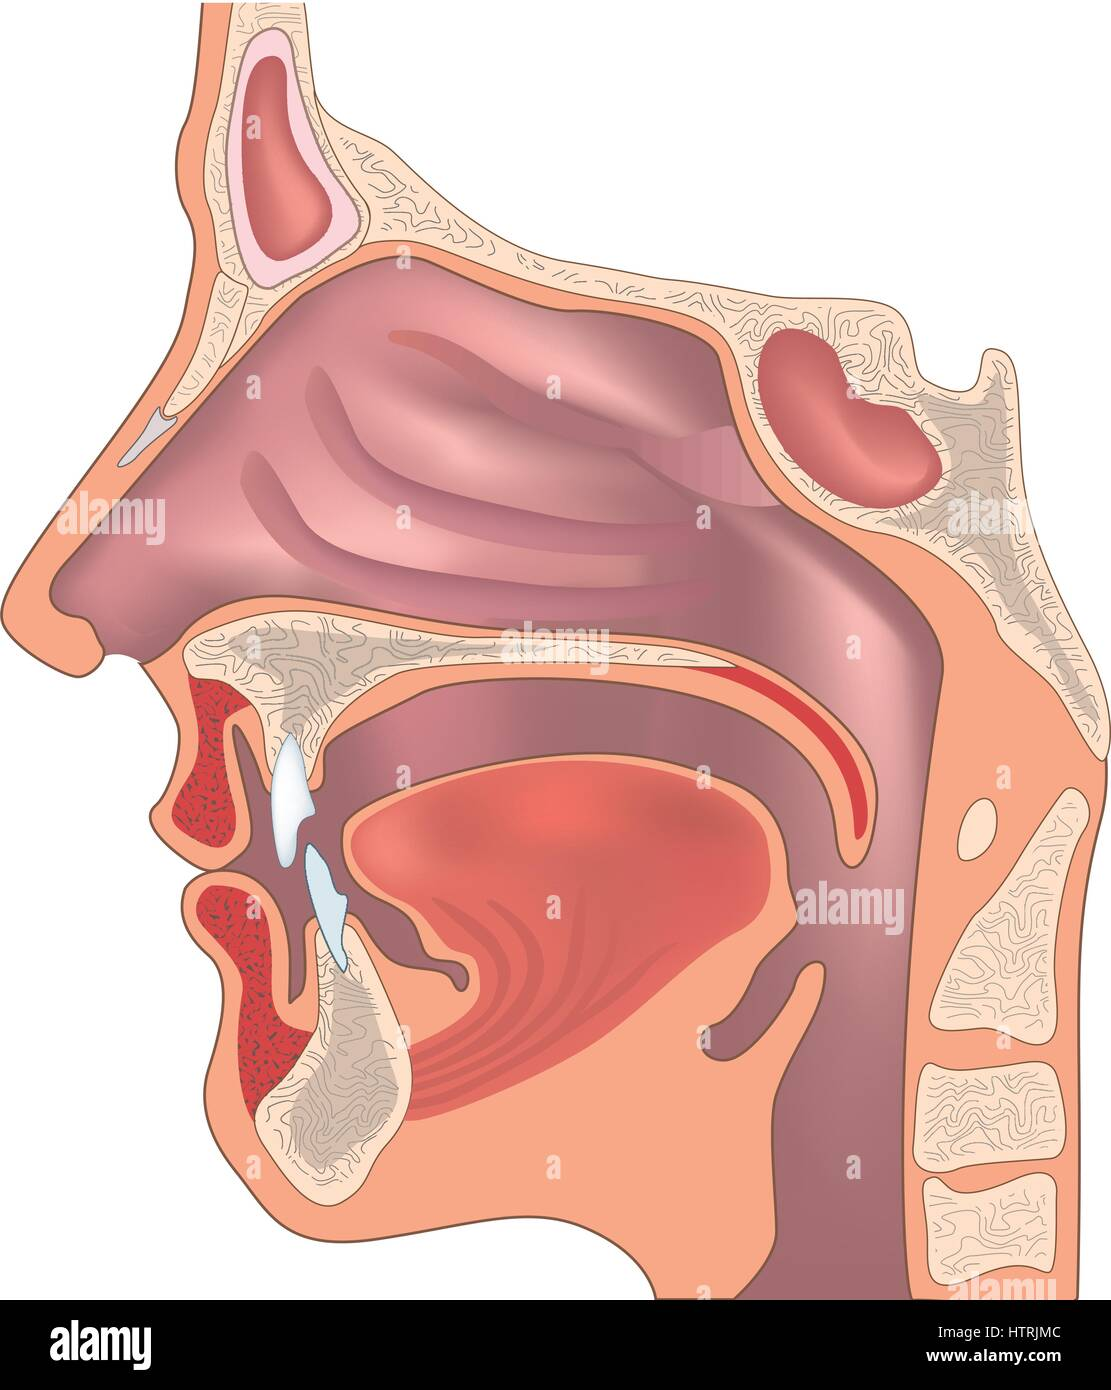 Anatomy Of Human Tongue Stock Photos Anatomy Of Human Tongue Stock